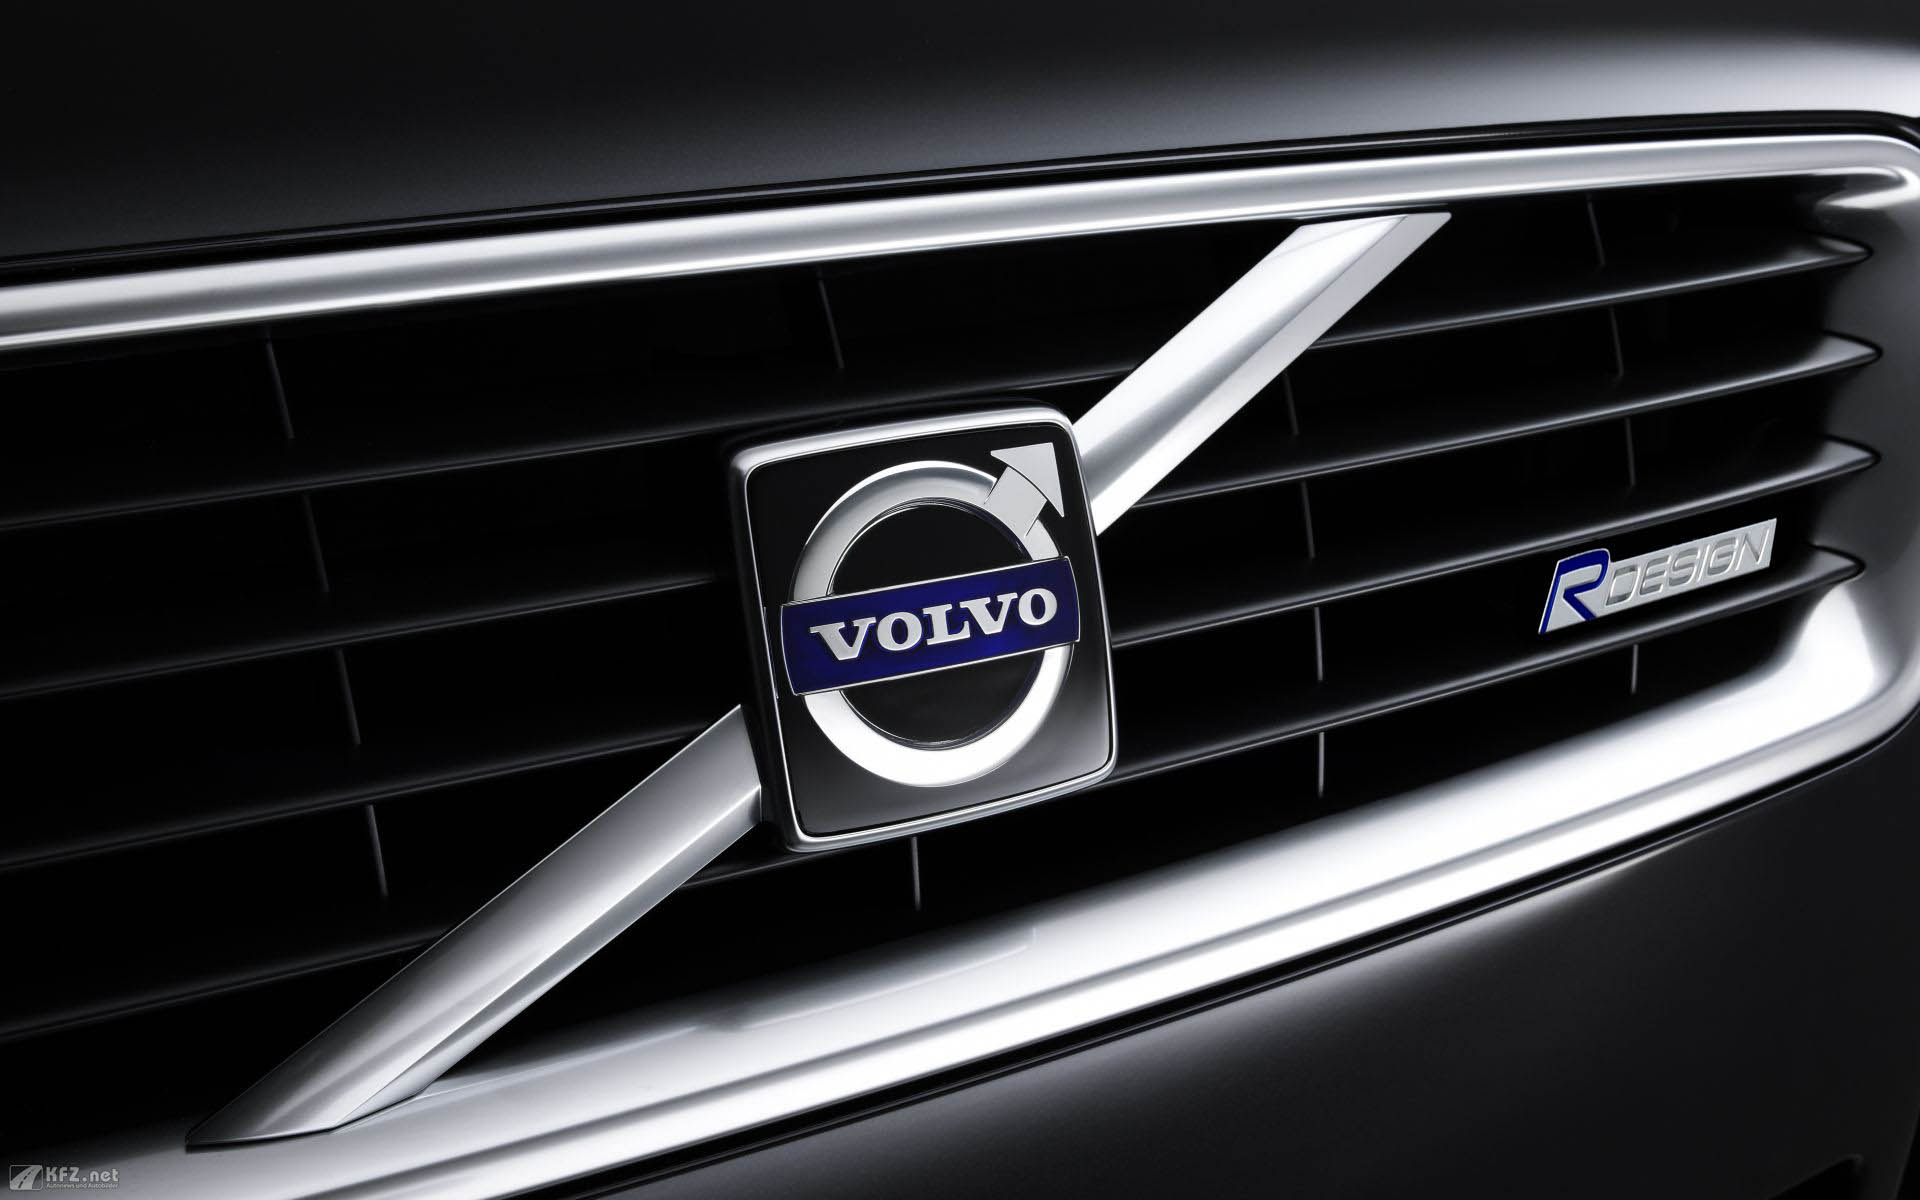 Volvo Wallpapers HD Backgrounds Images Pics Photos 1920x1200